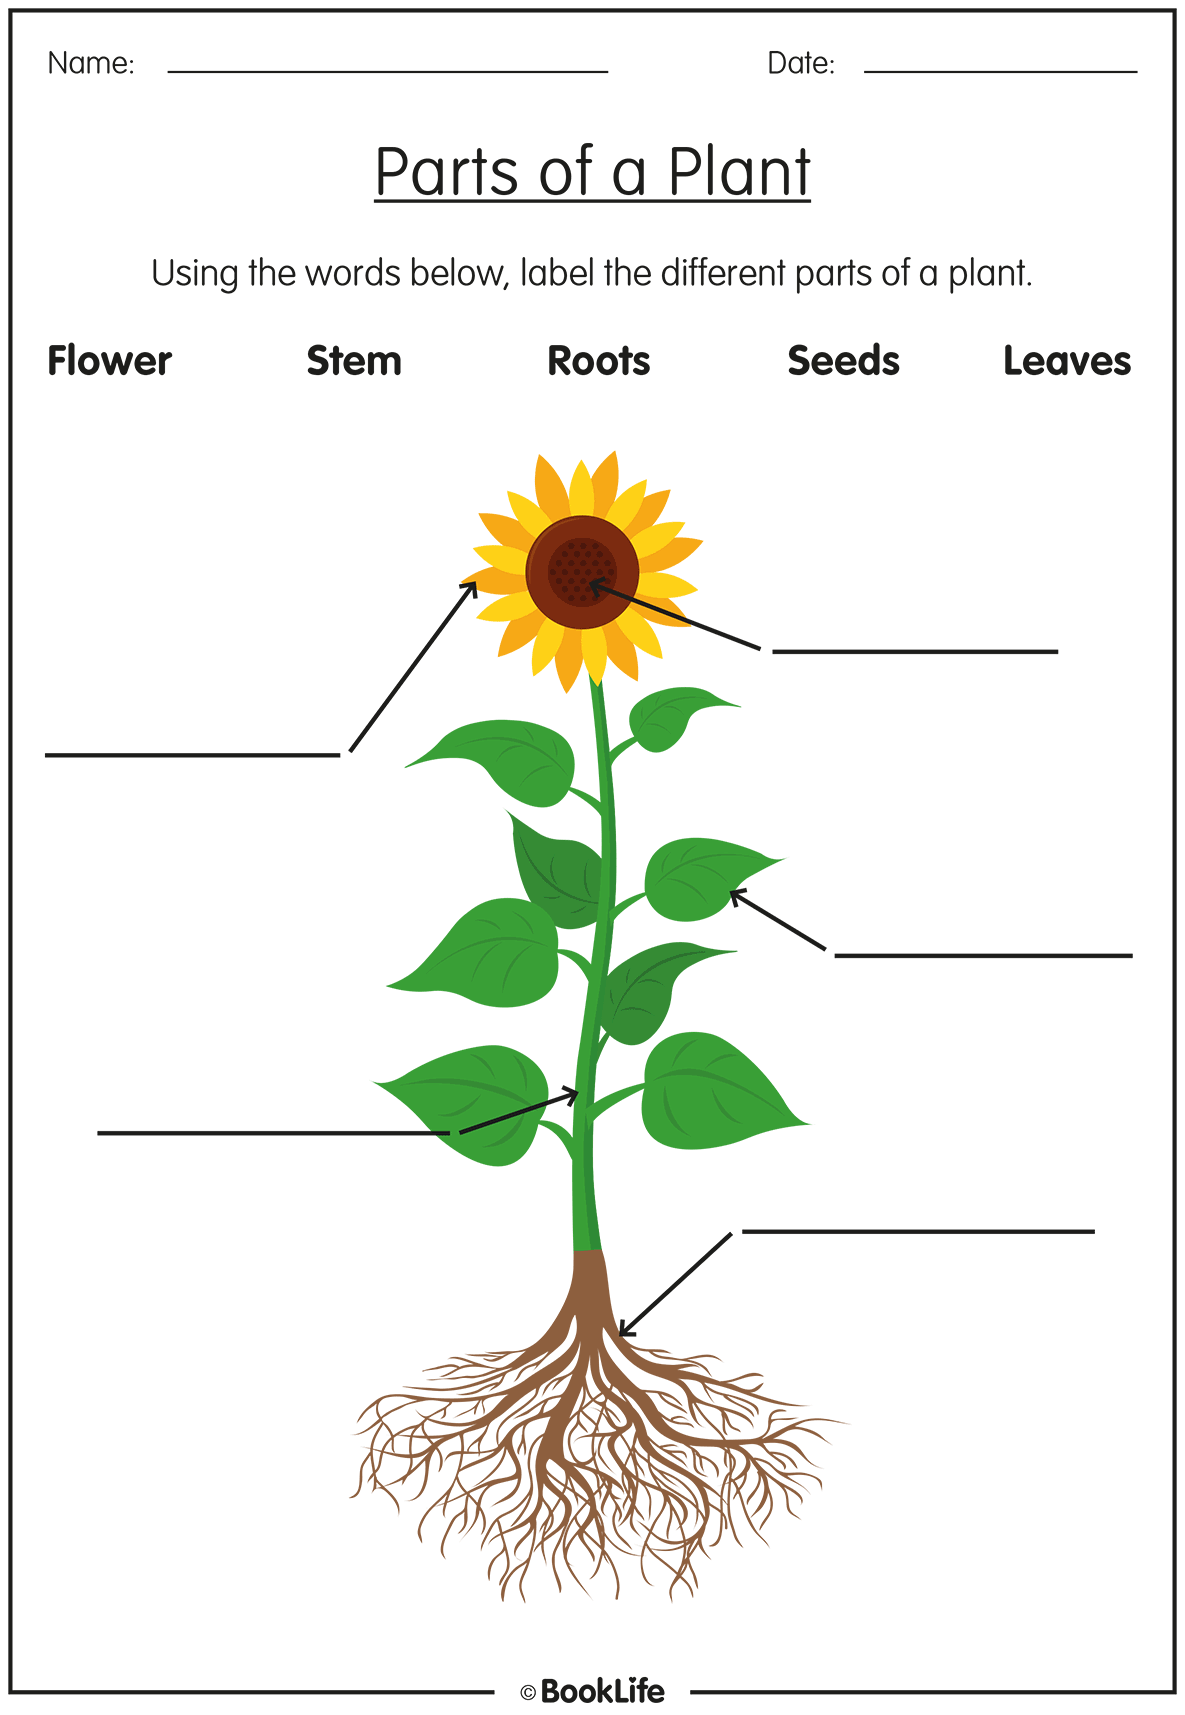 Free Parts Of A Plant Activity Sheet Booklife